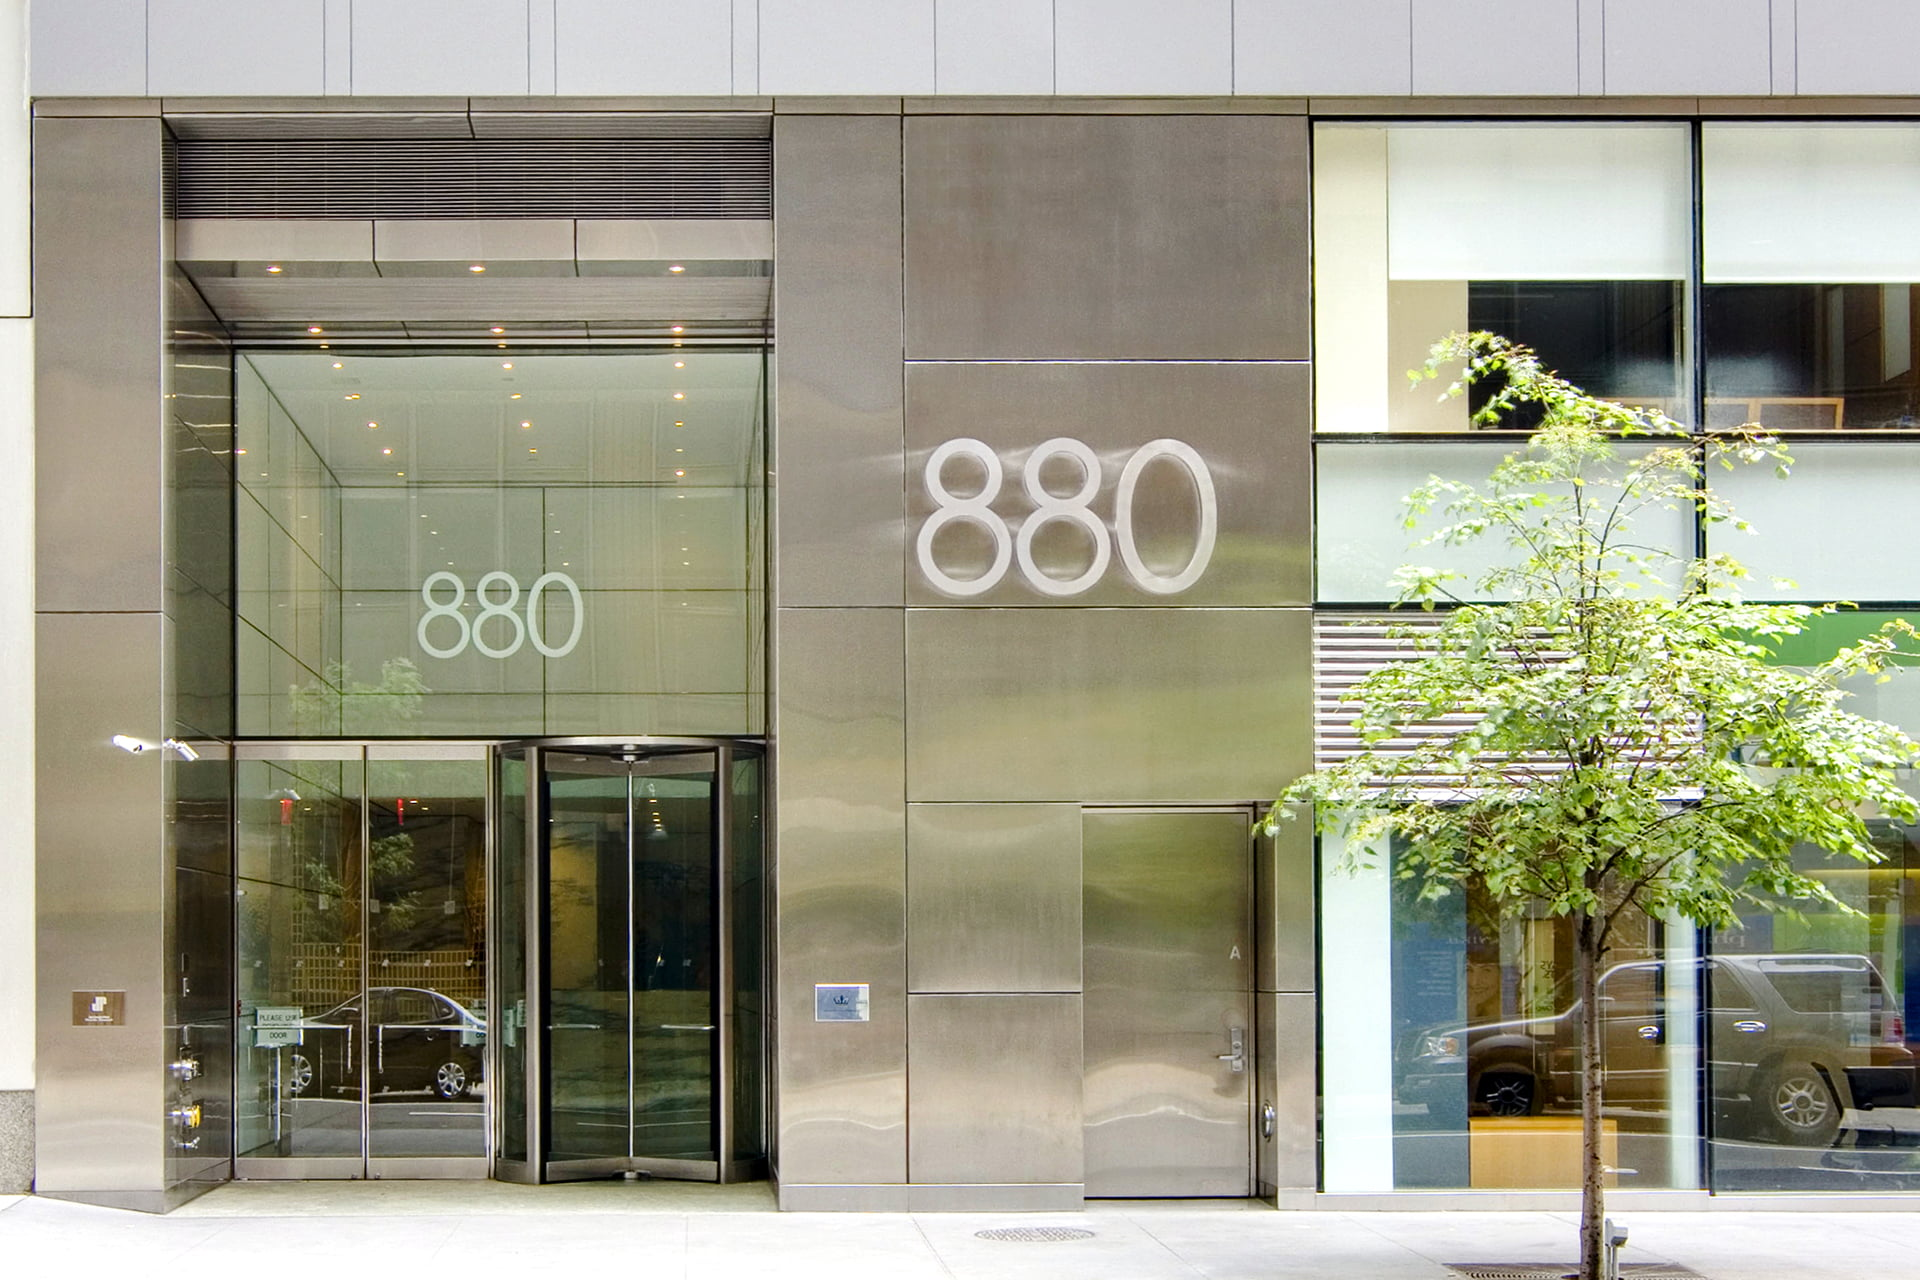 View of exterior entryway at 880 Third Avenue